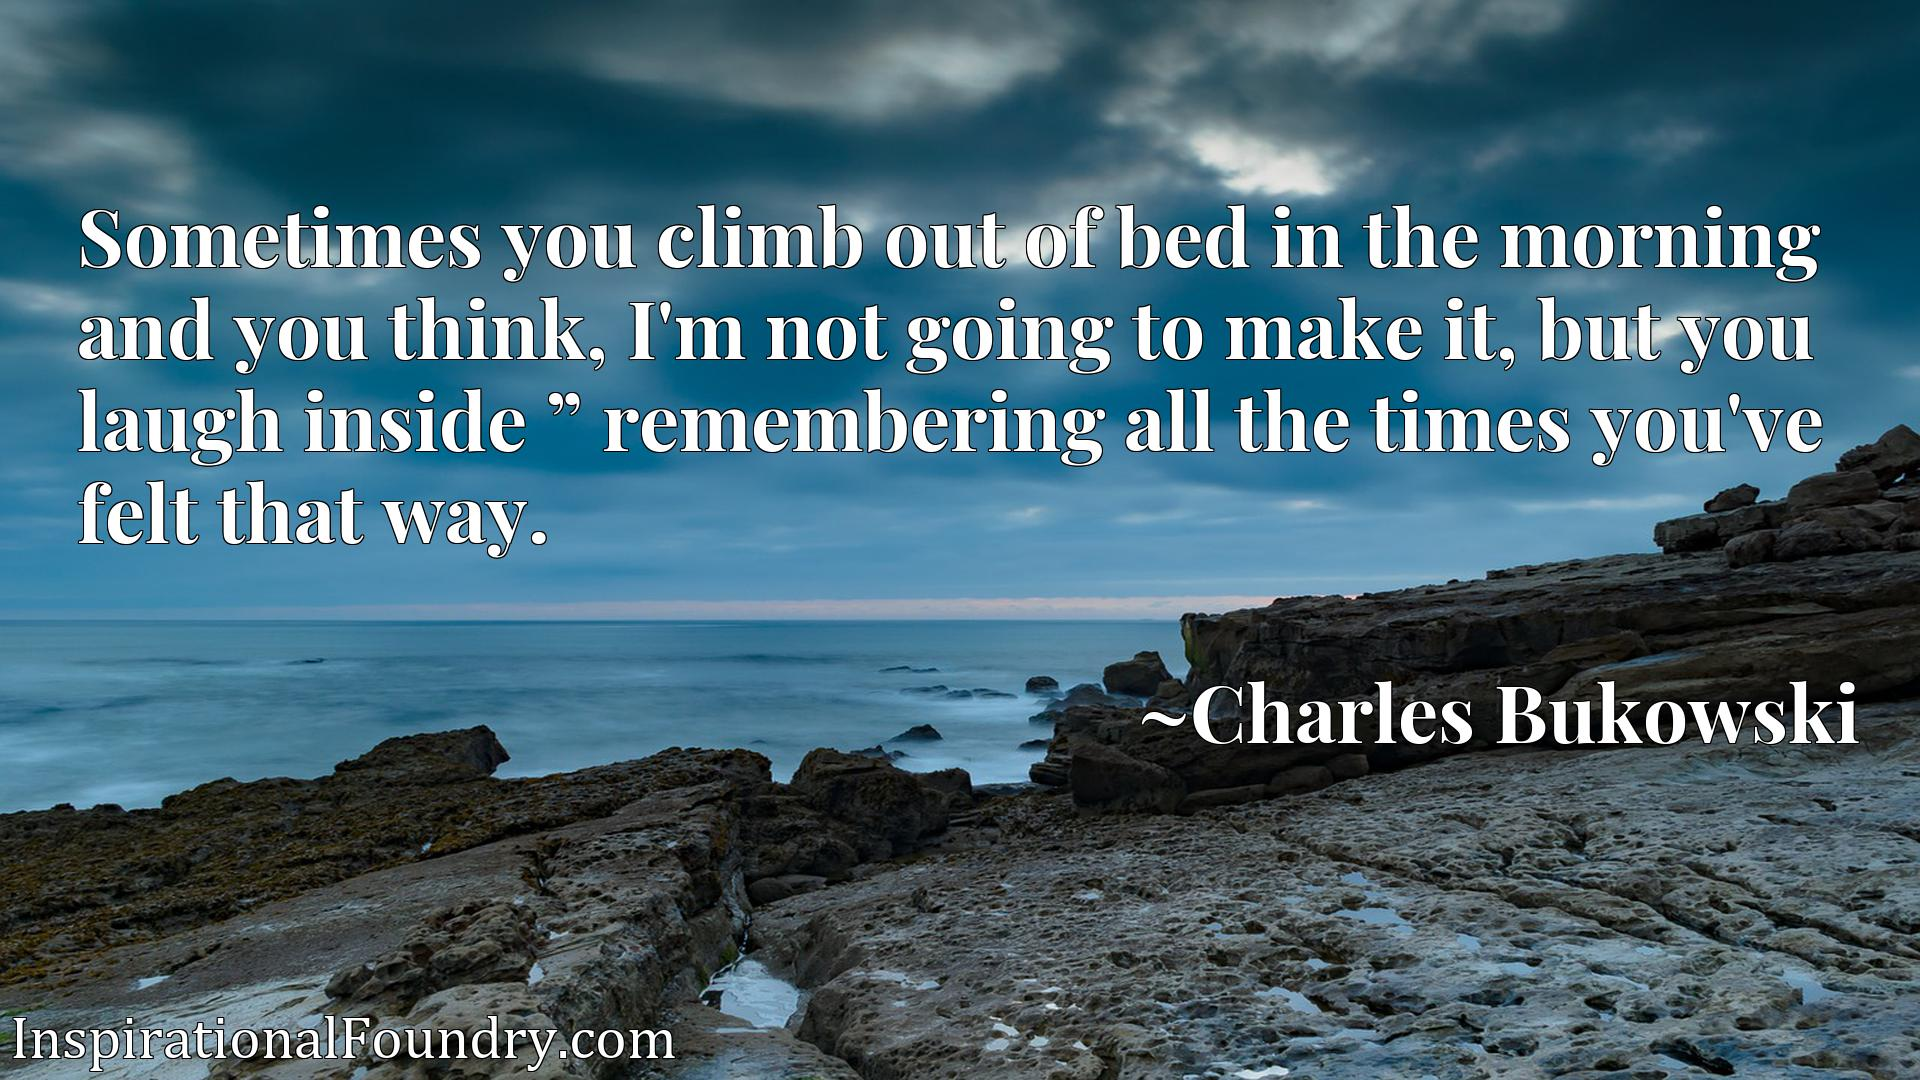 """Sometimes you climb out of bed in the morning and you think, I'm not going to make it, but you laugh inside """" remembering all the times you've felt that way."""